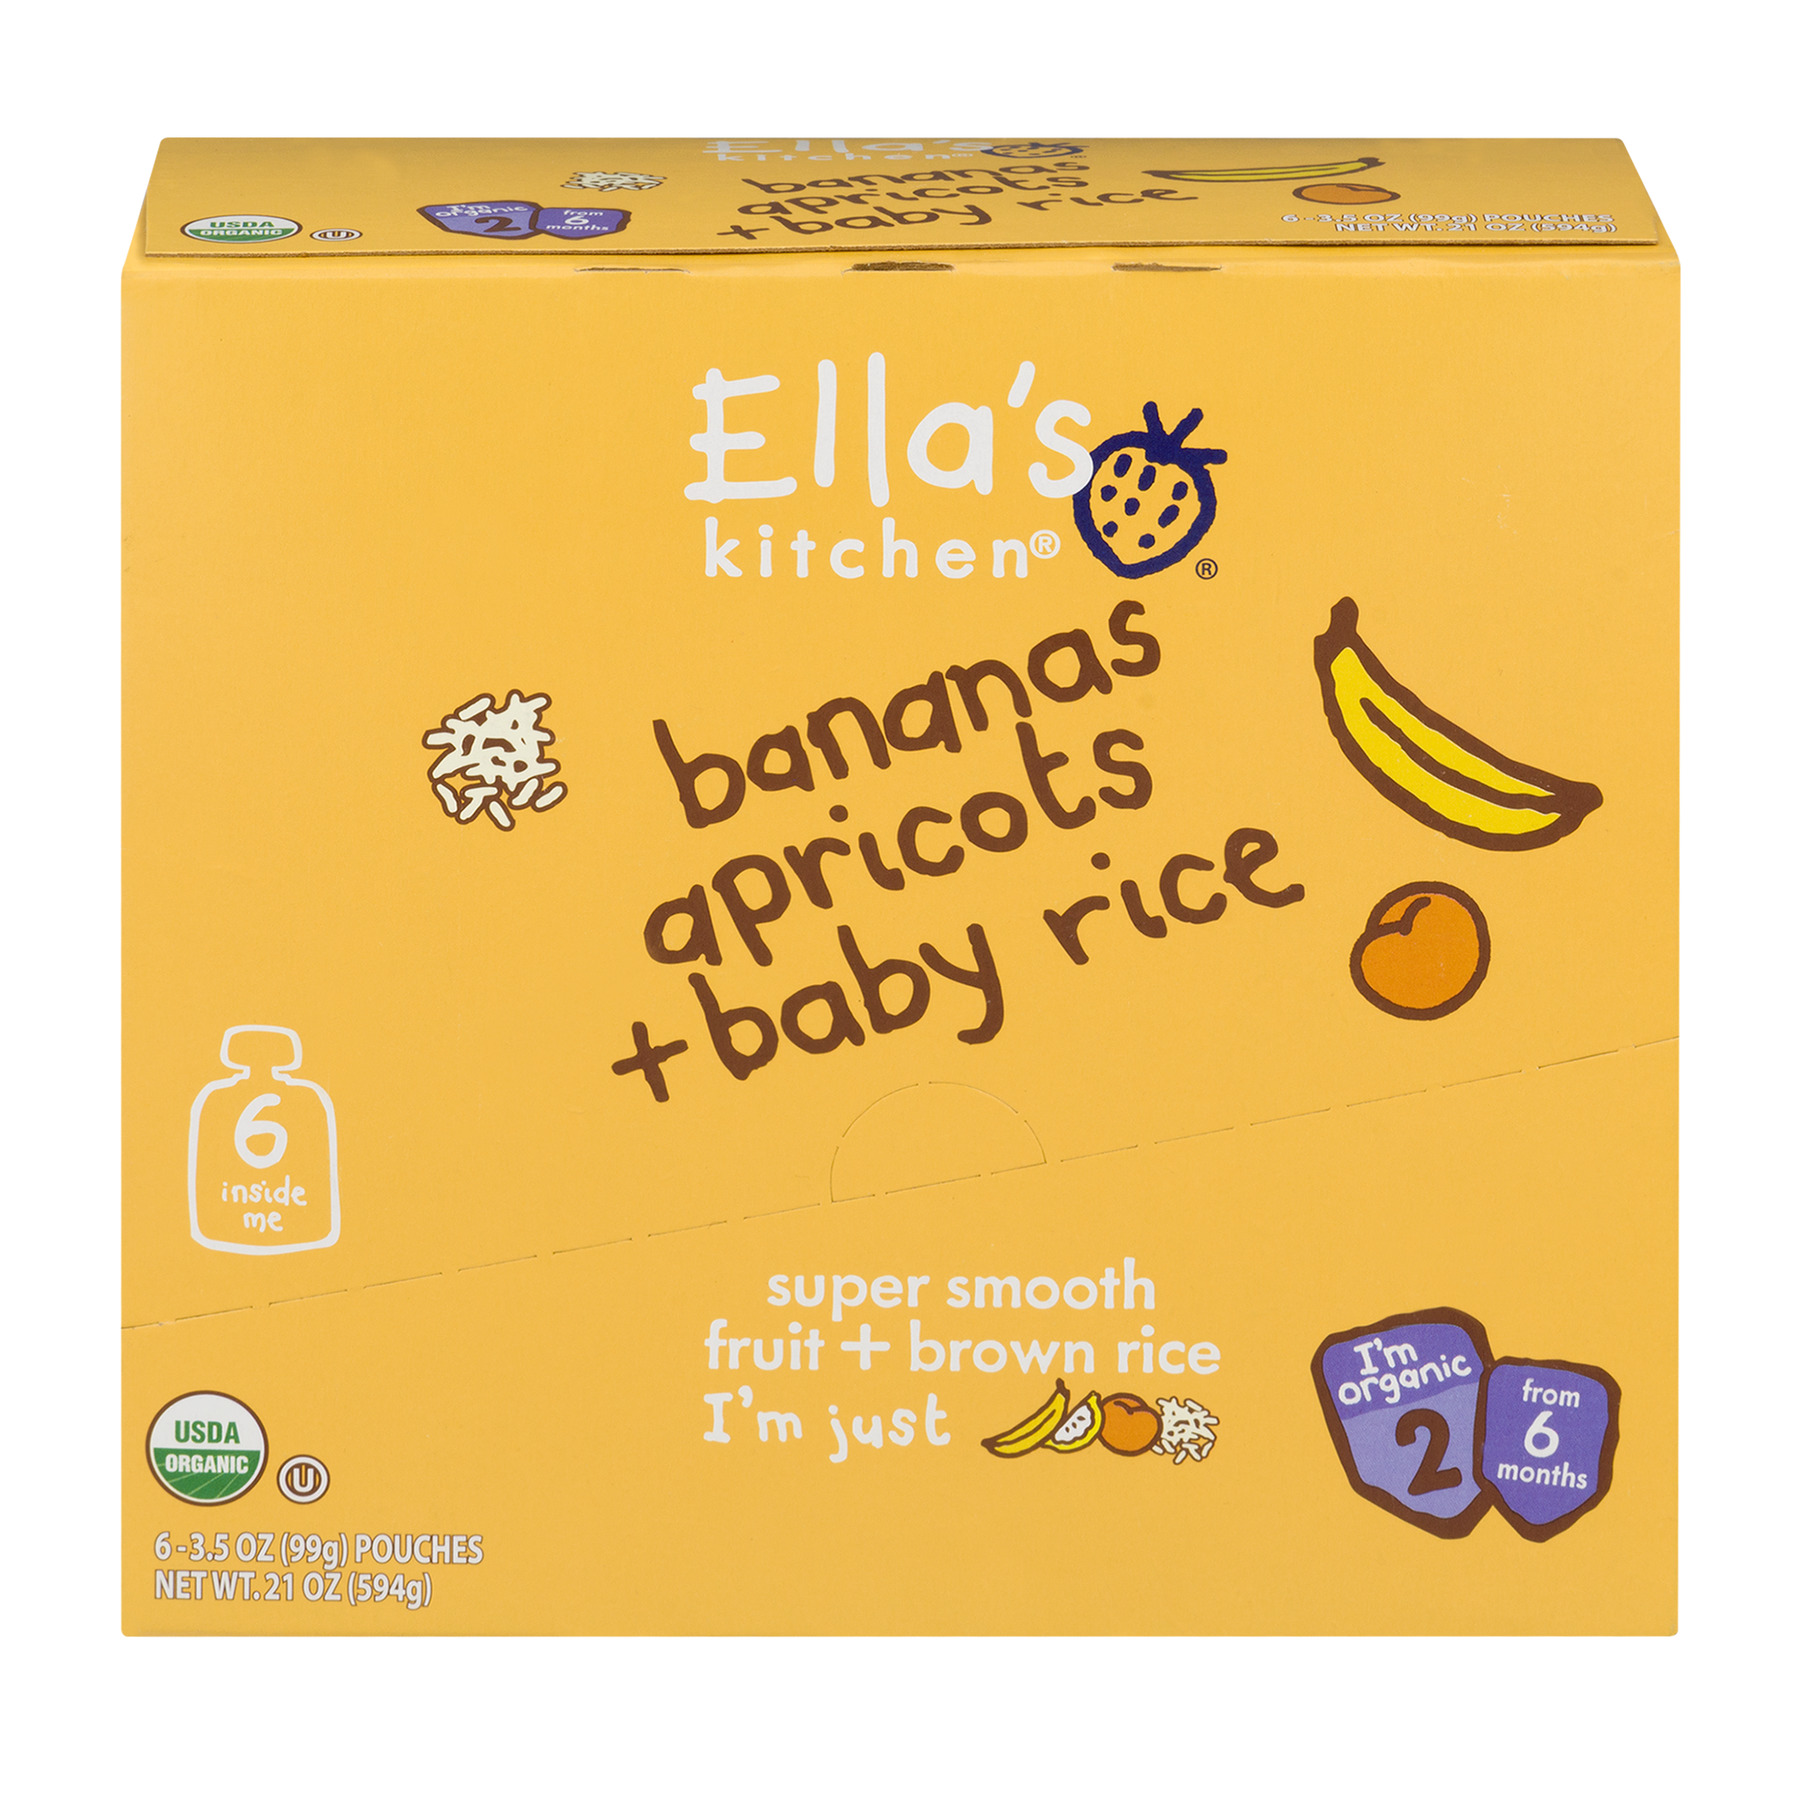 Ella's Kitchen 6+ Months Organic Baby Food, Bananas Apricots + Baby Rice, 3.5 oz. (Pack of 6)